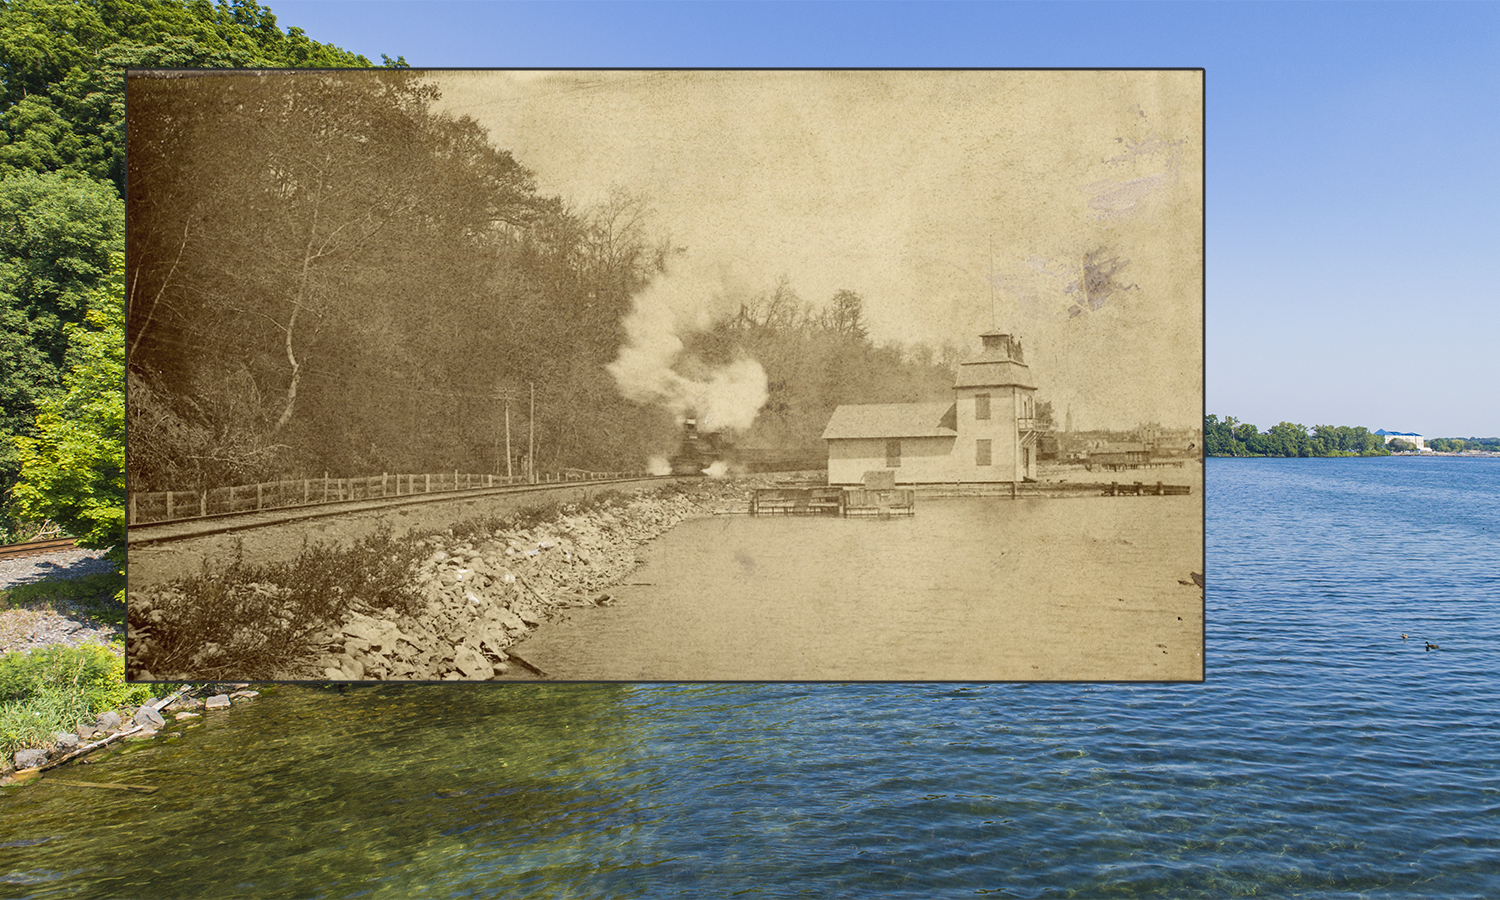 Boathouse Then and Now